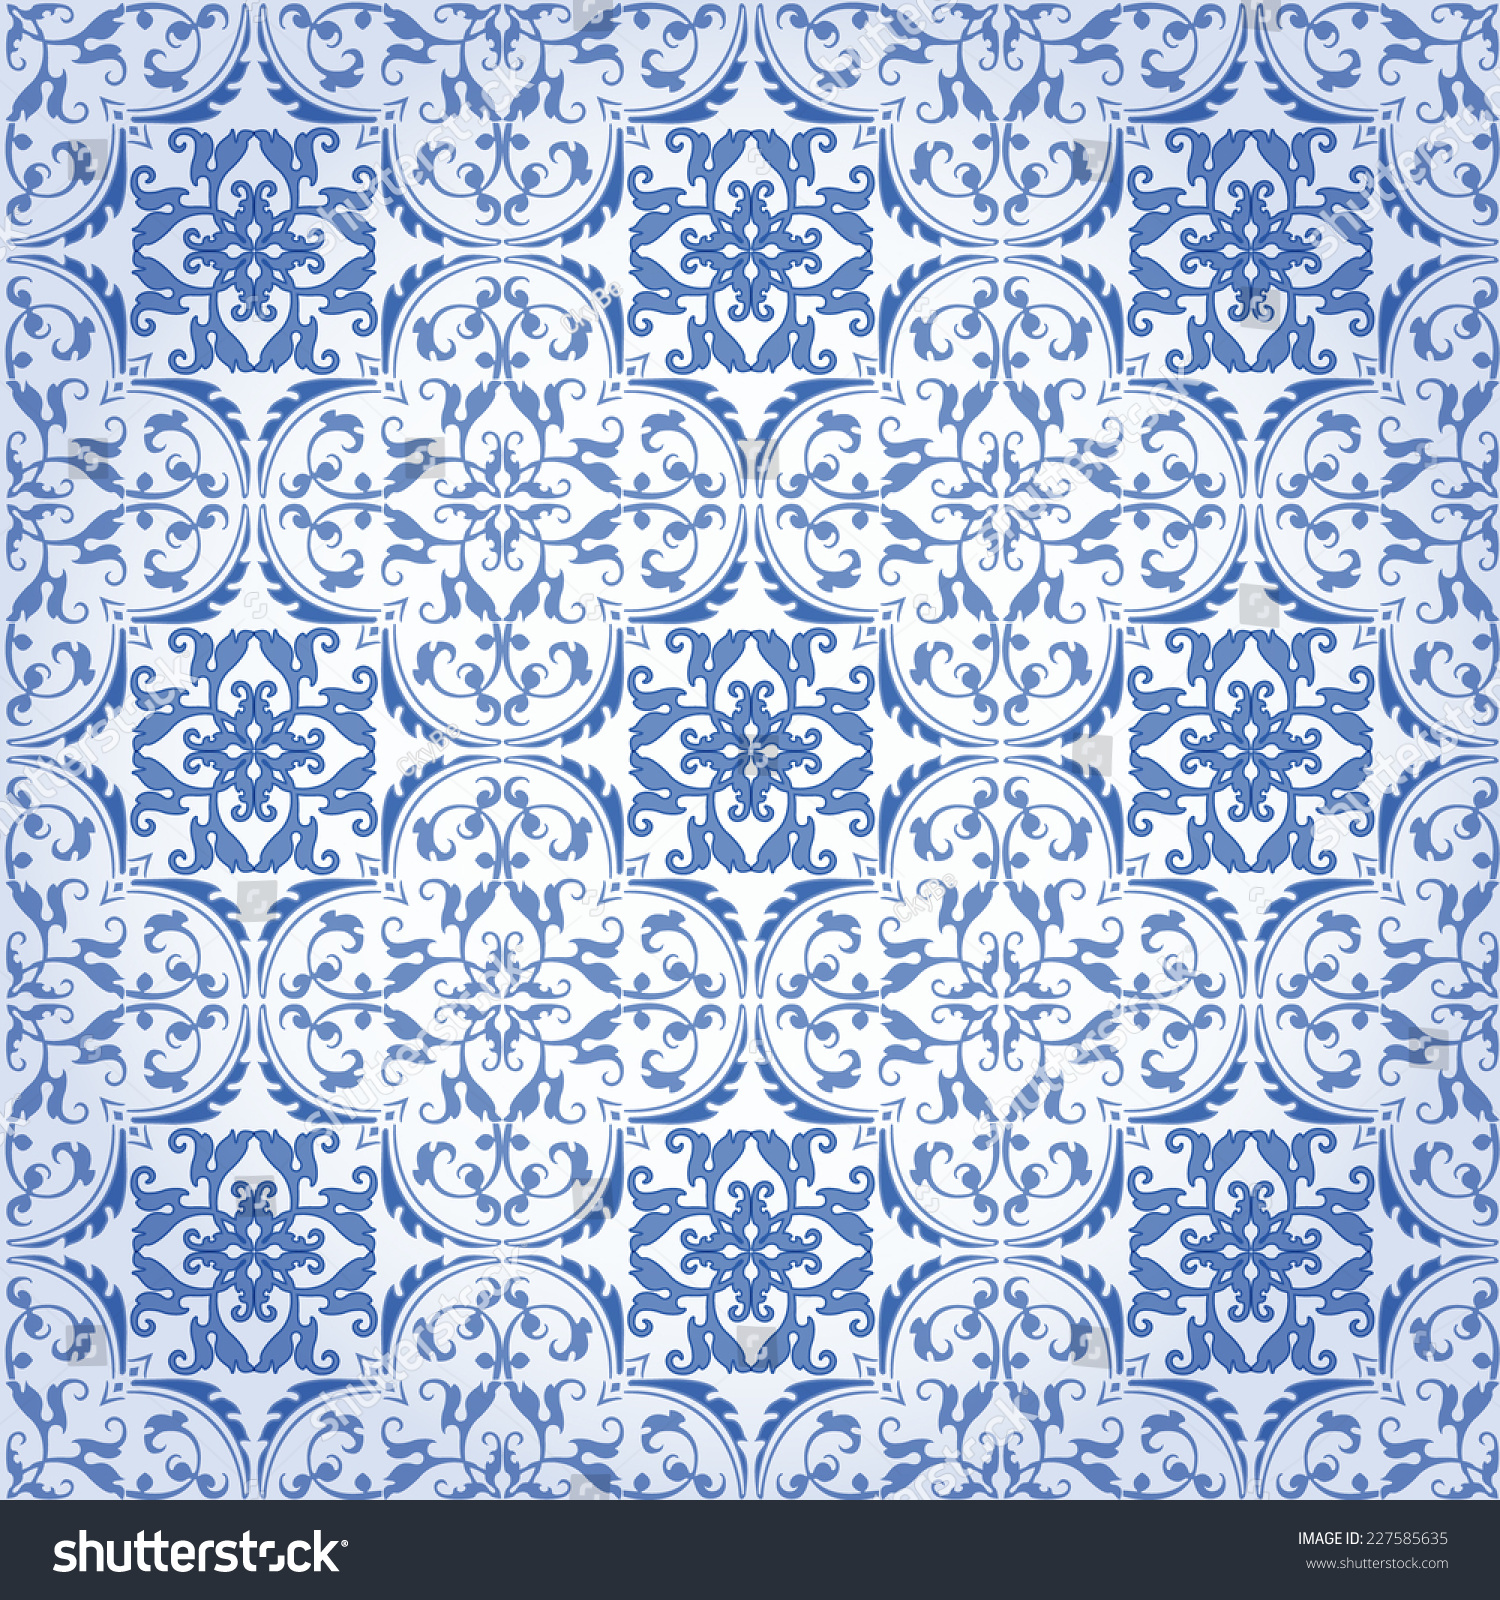 Turkish Design Wallpaper : Seamless damask background pattern design wallpaper stock